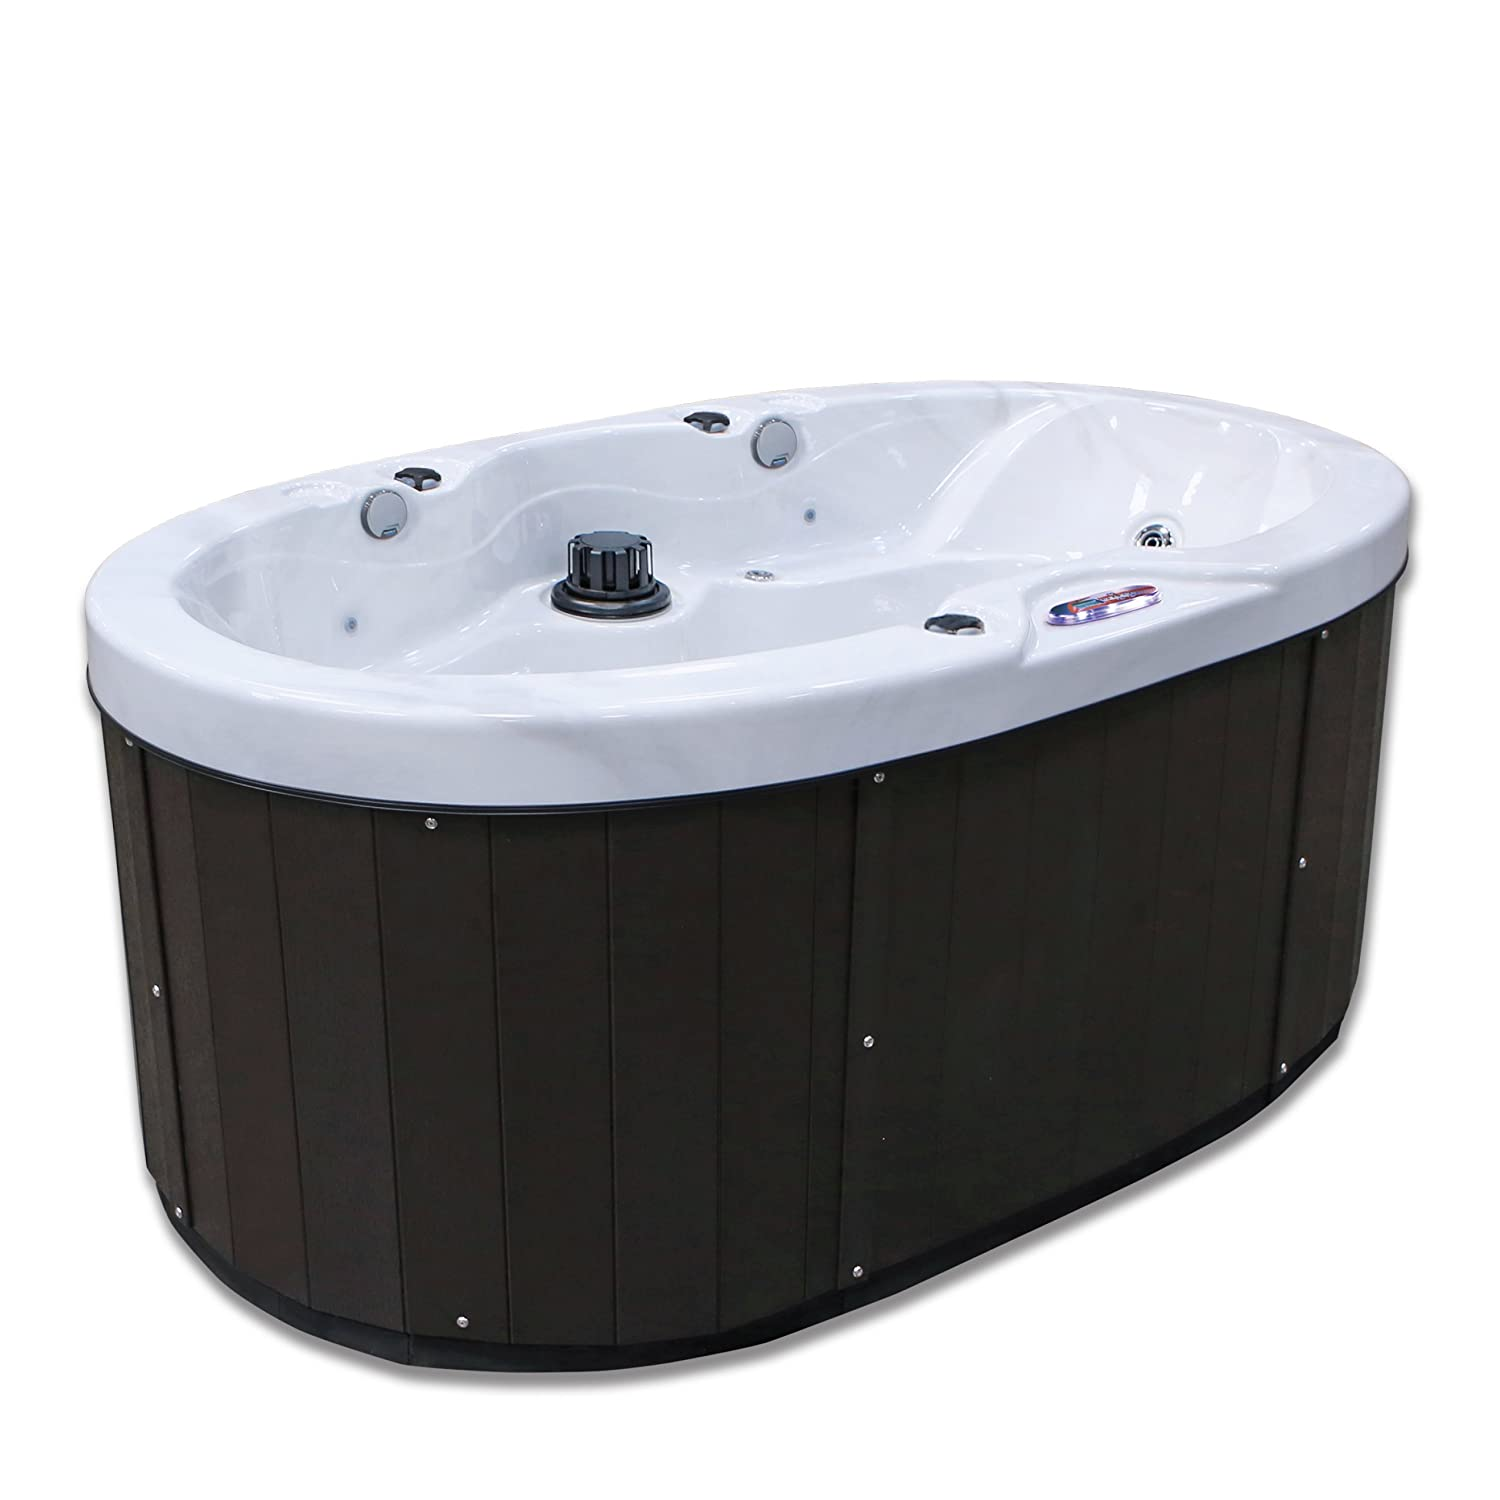 Amazon.com : American Spas AM-420B 2-Person Hot Tub 20 Jets Plug-In ...